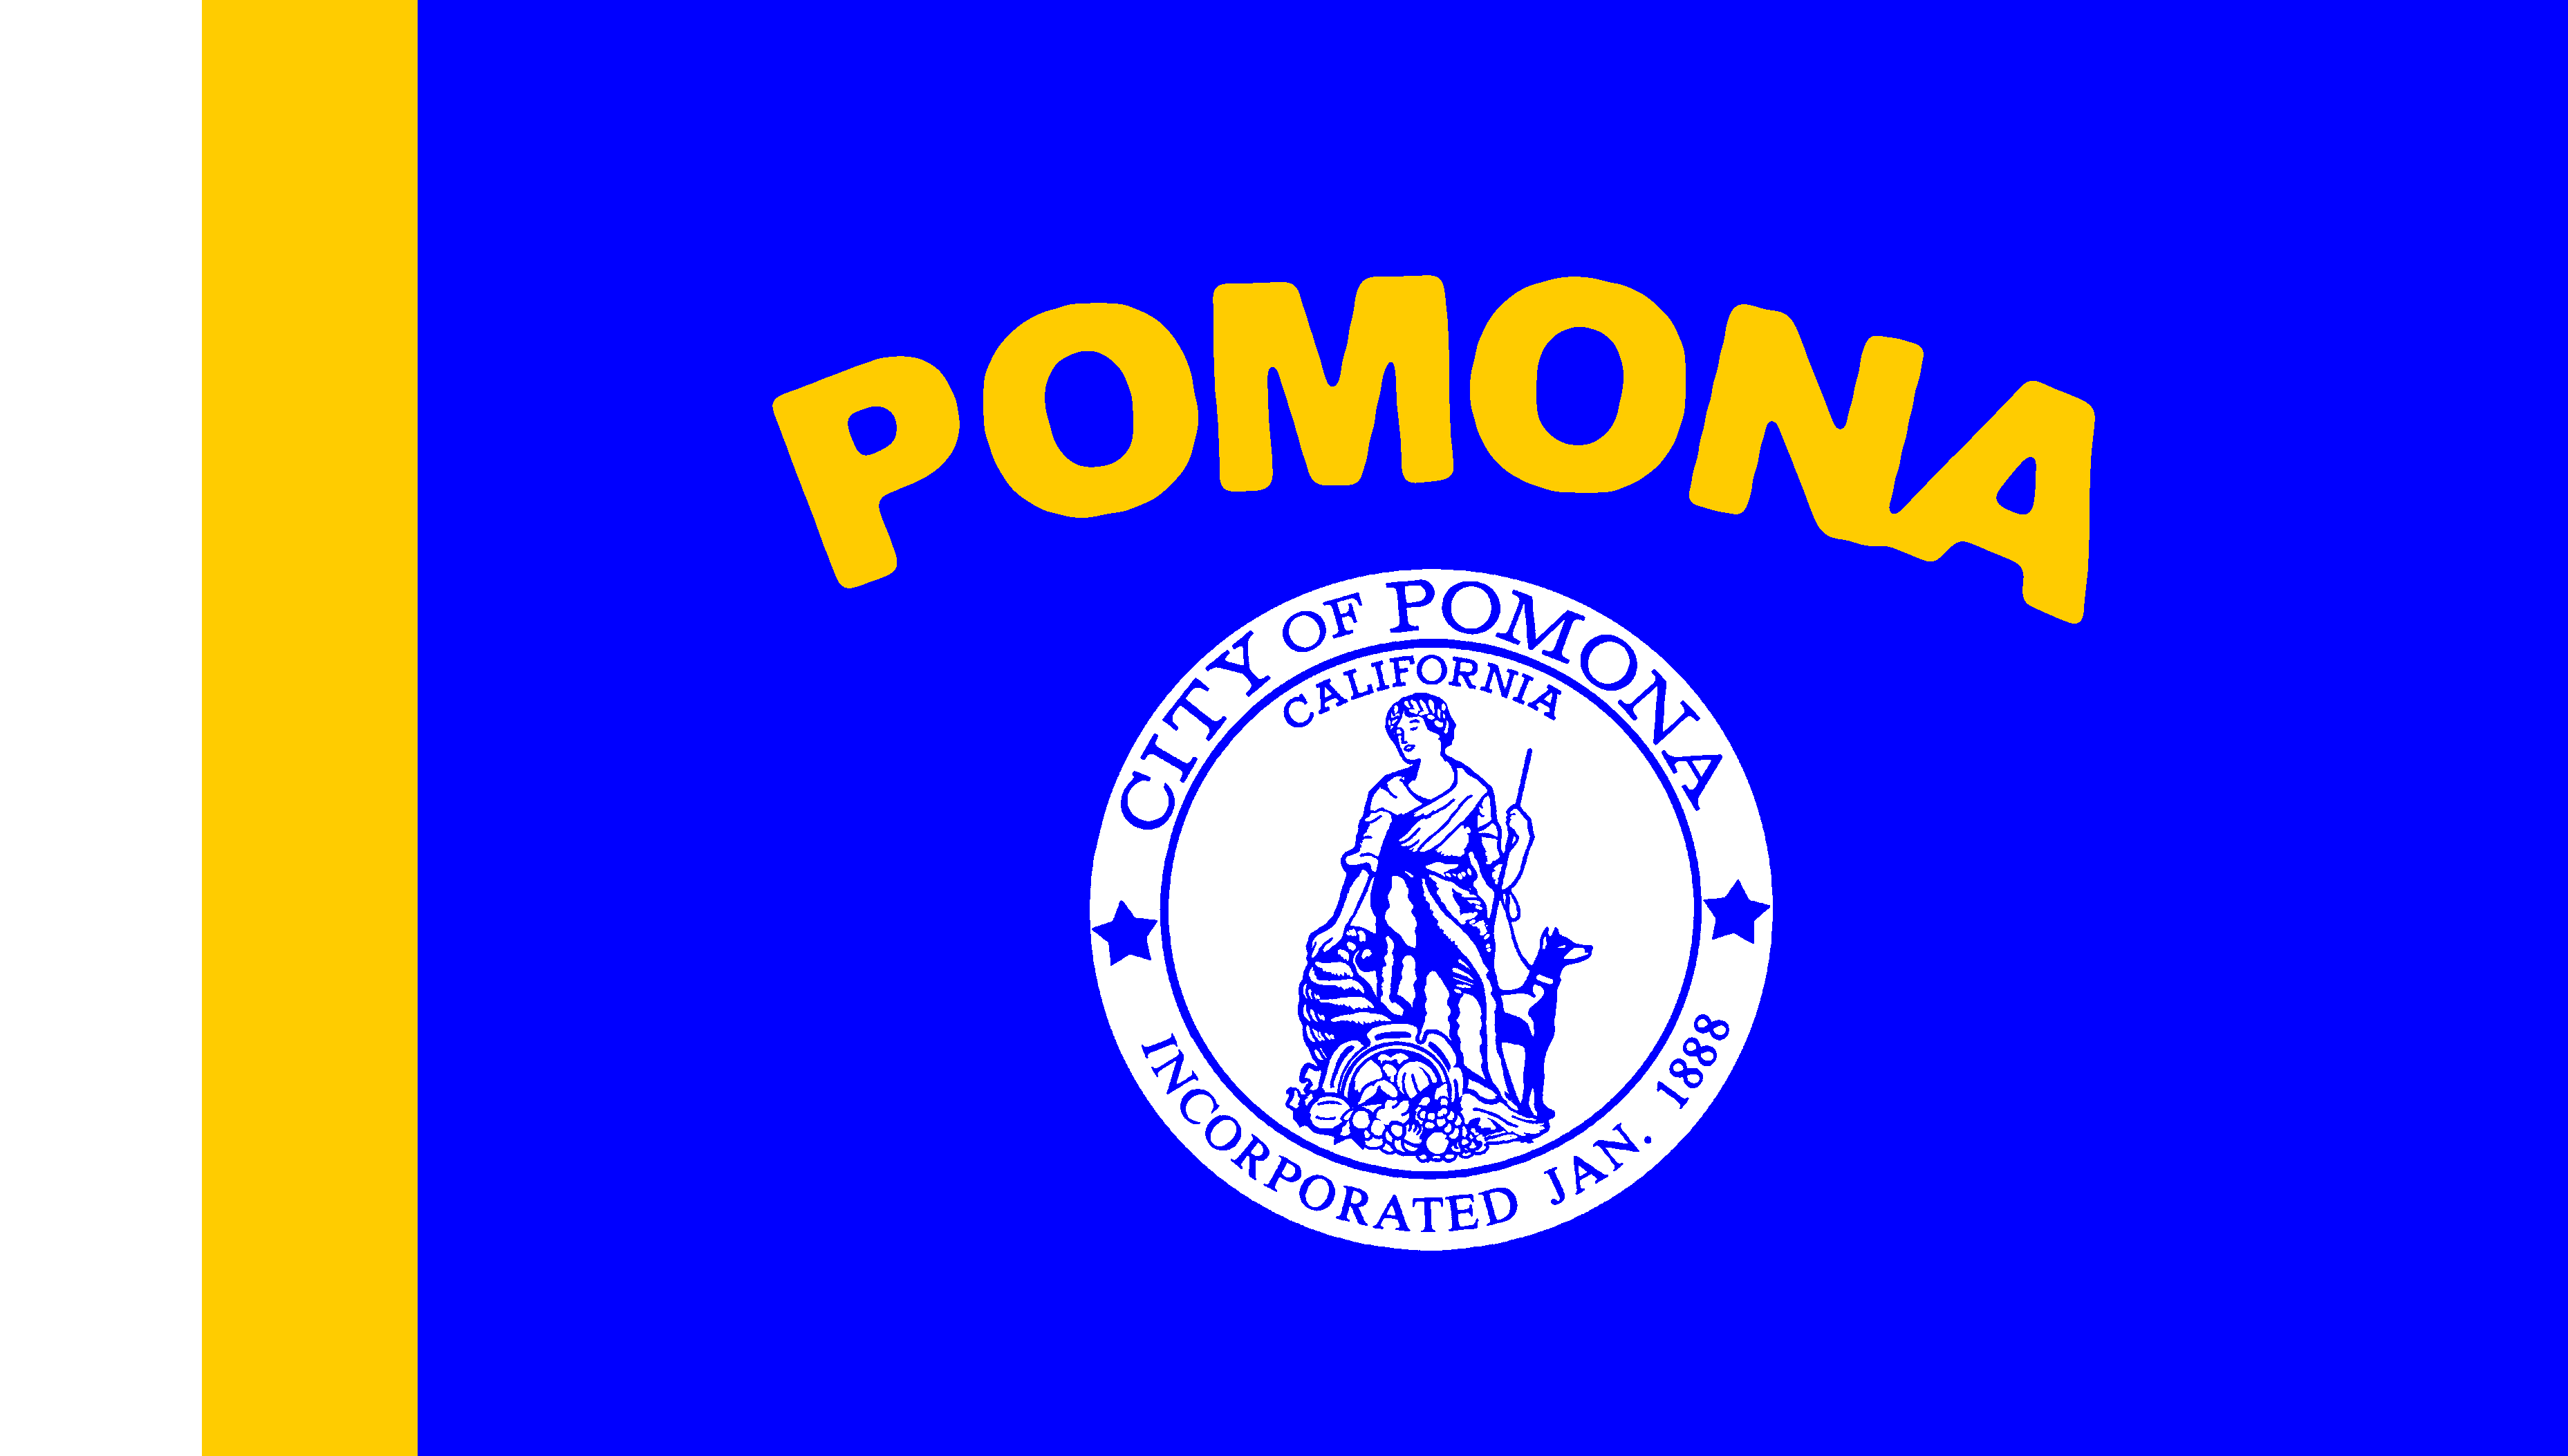 Pomona, California